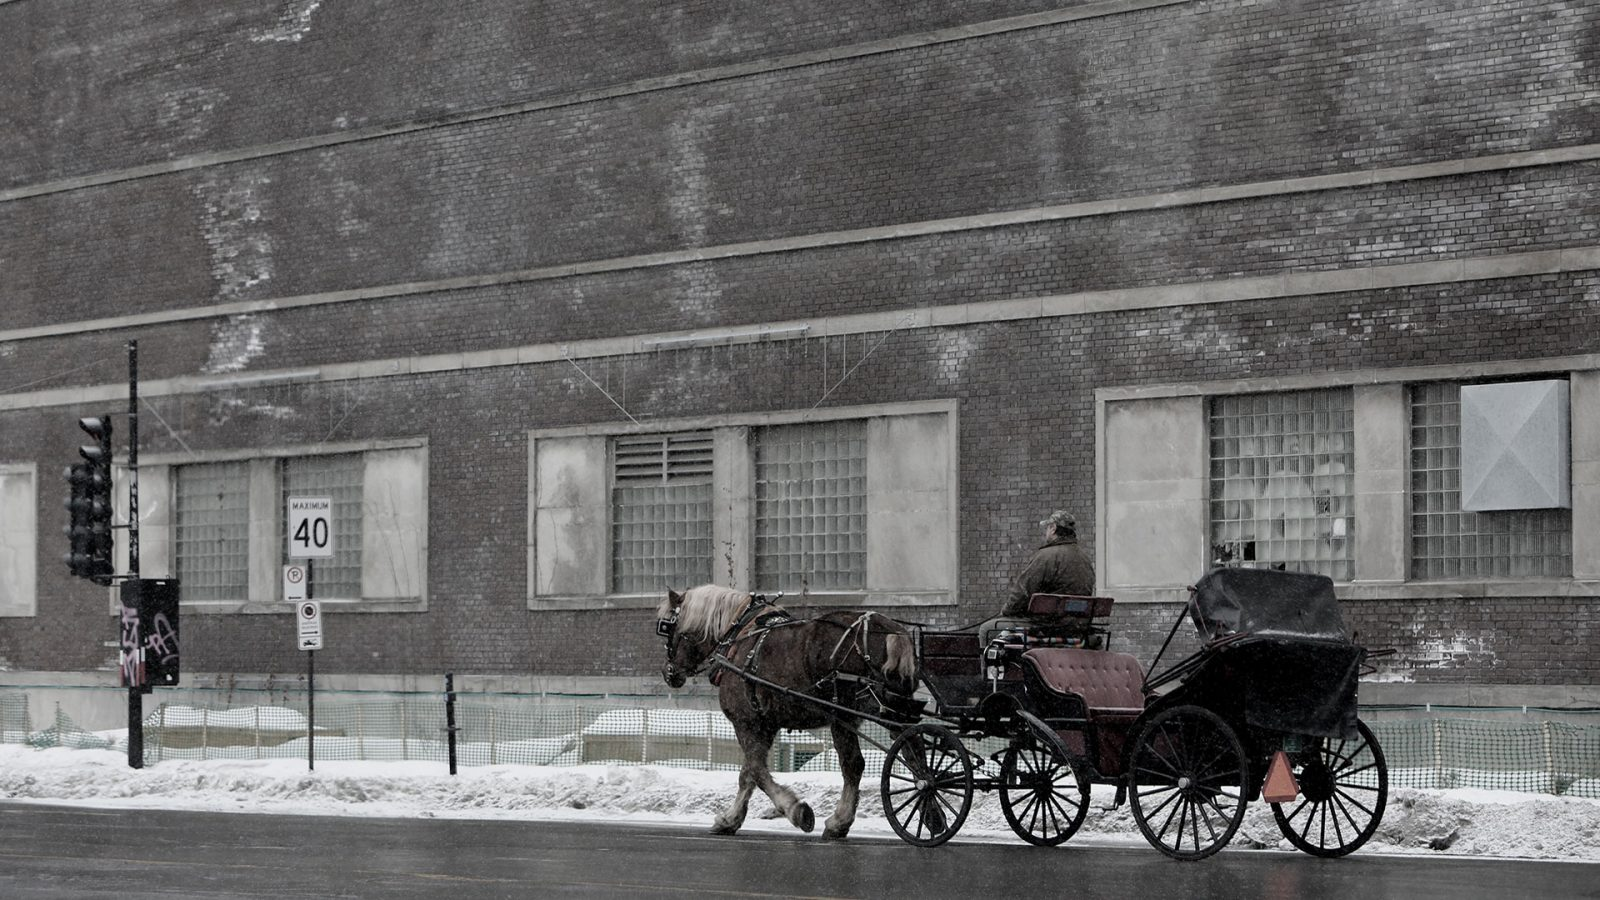 Holiday Carriage Rides in Lebanon